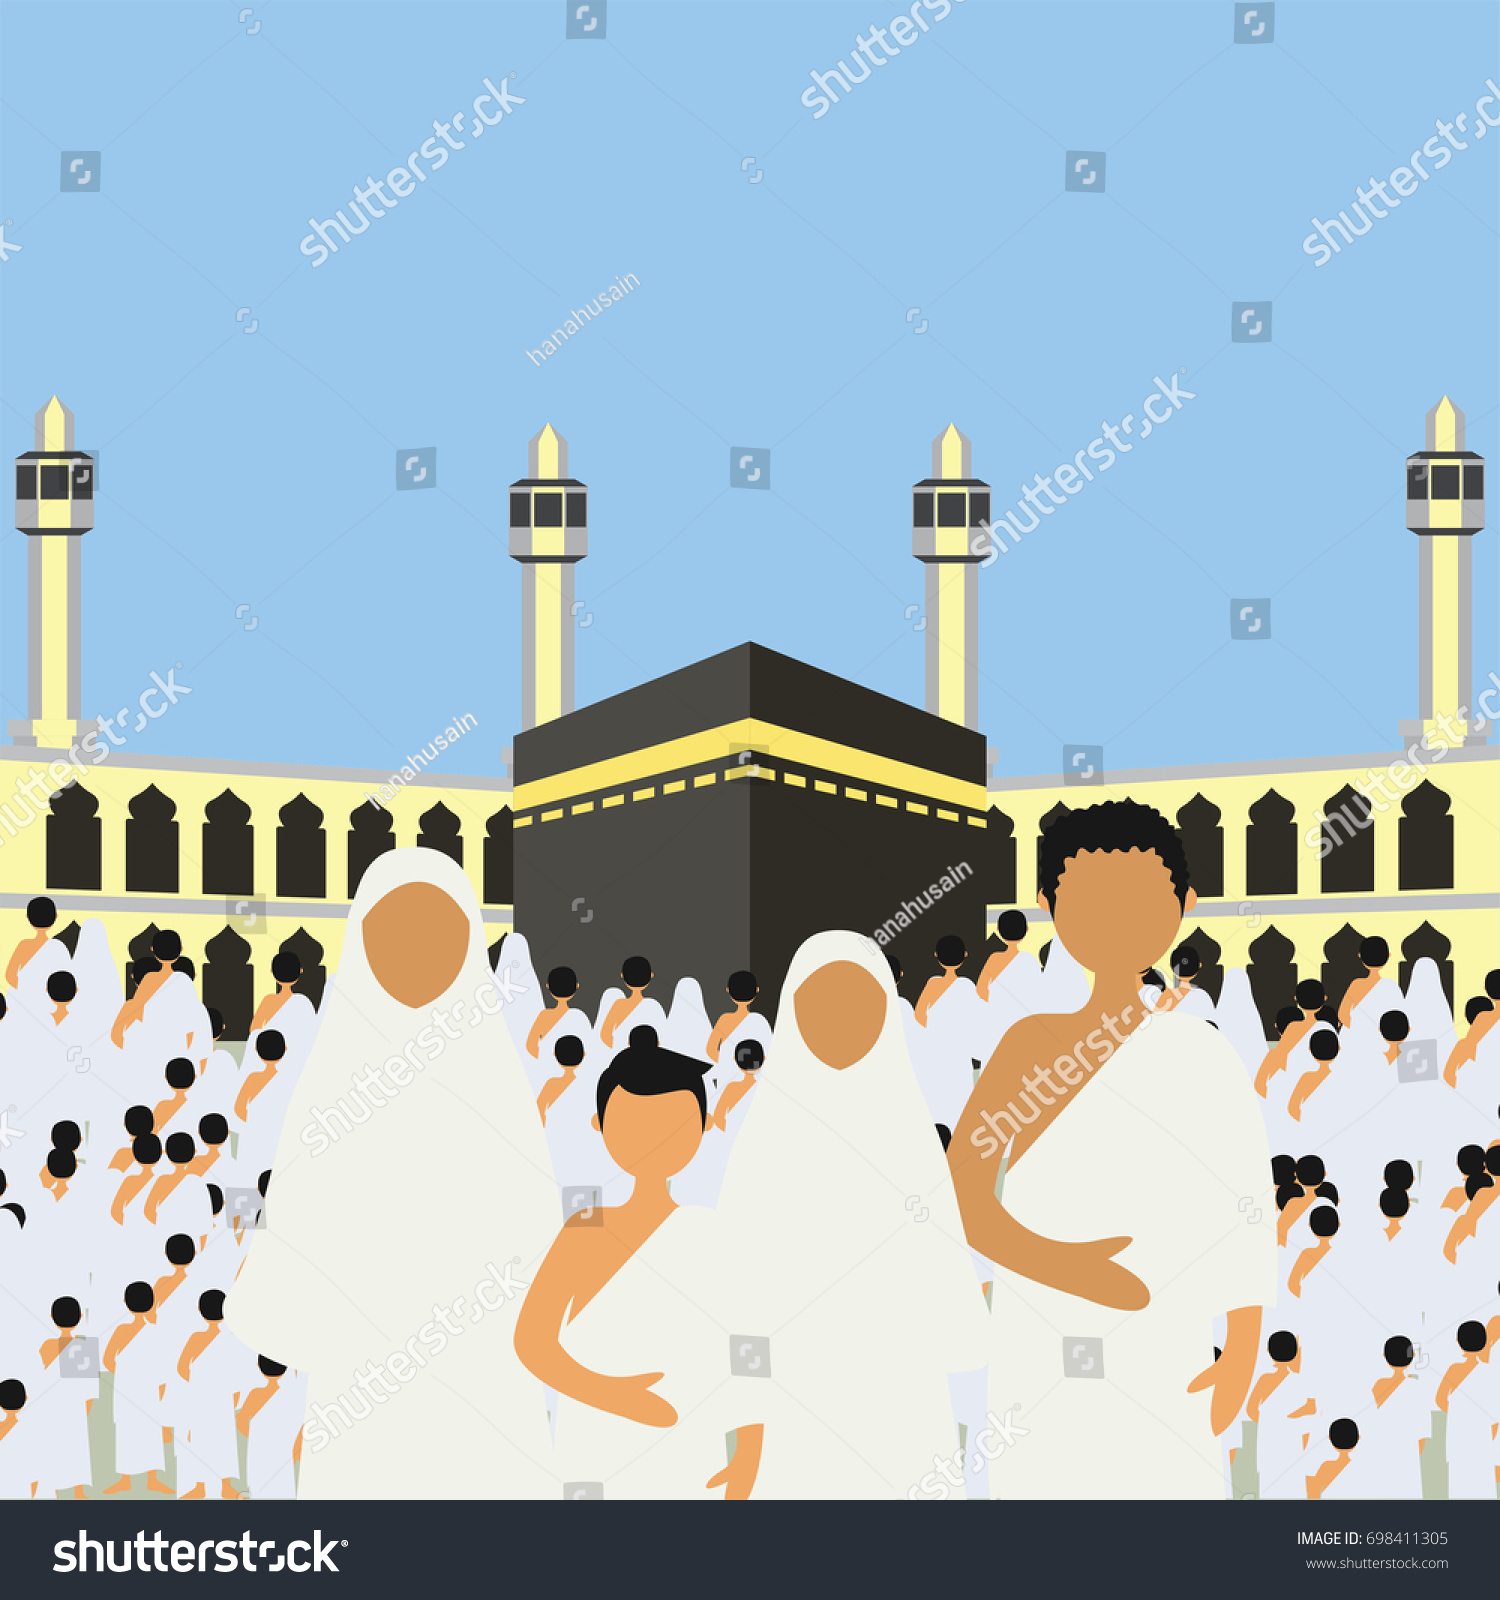 Muslim Pilgrims Perform Hajj Umrah Pilgrimage Stock Vector ...